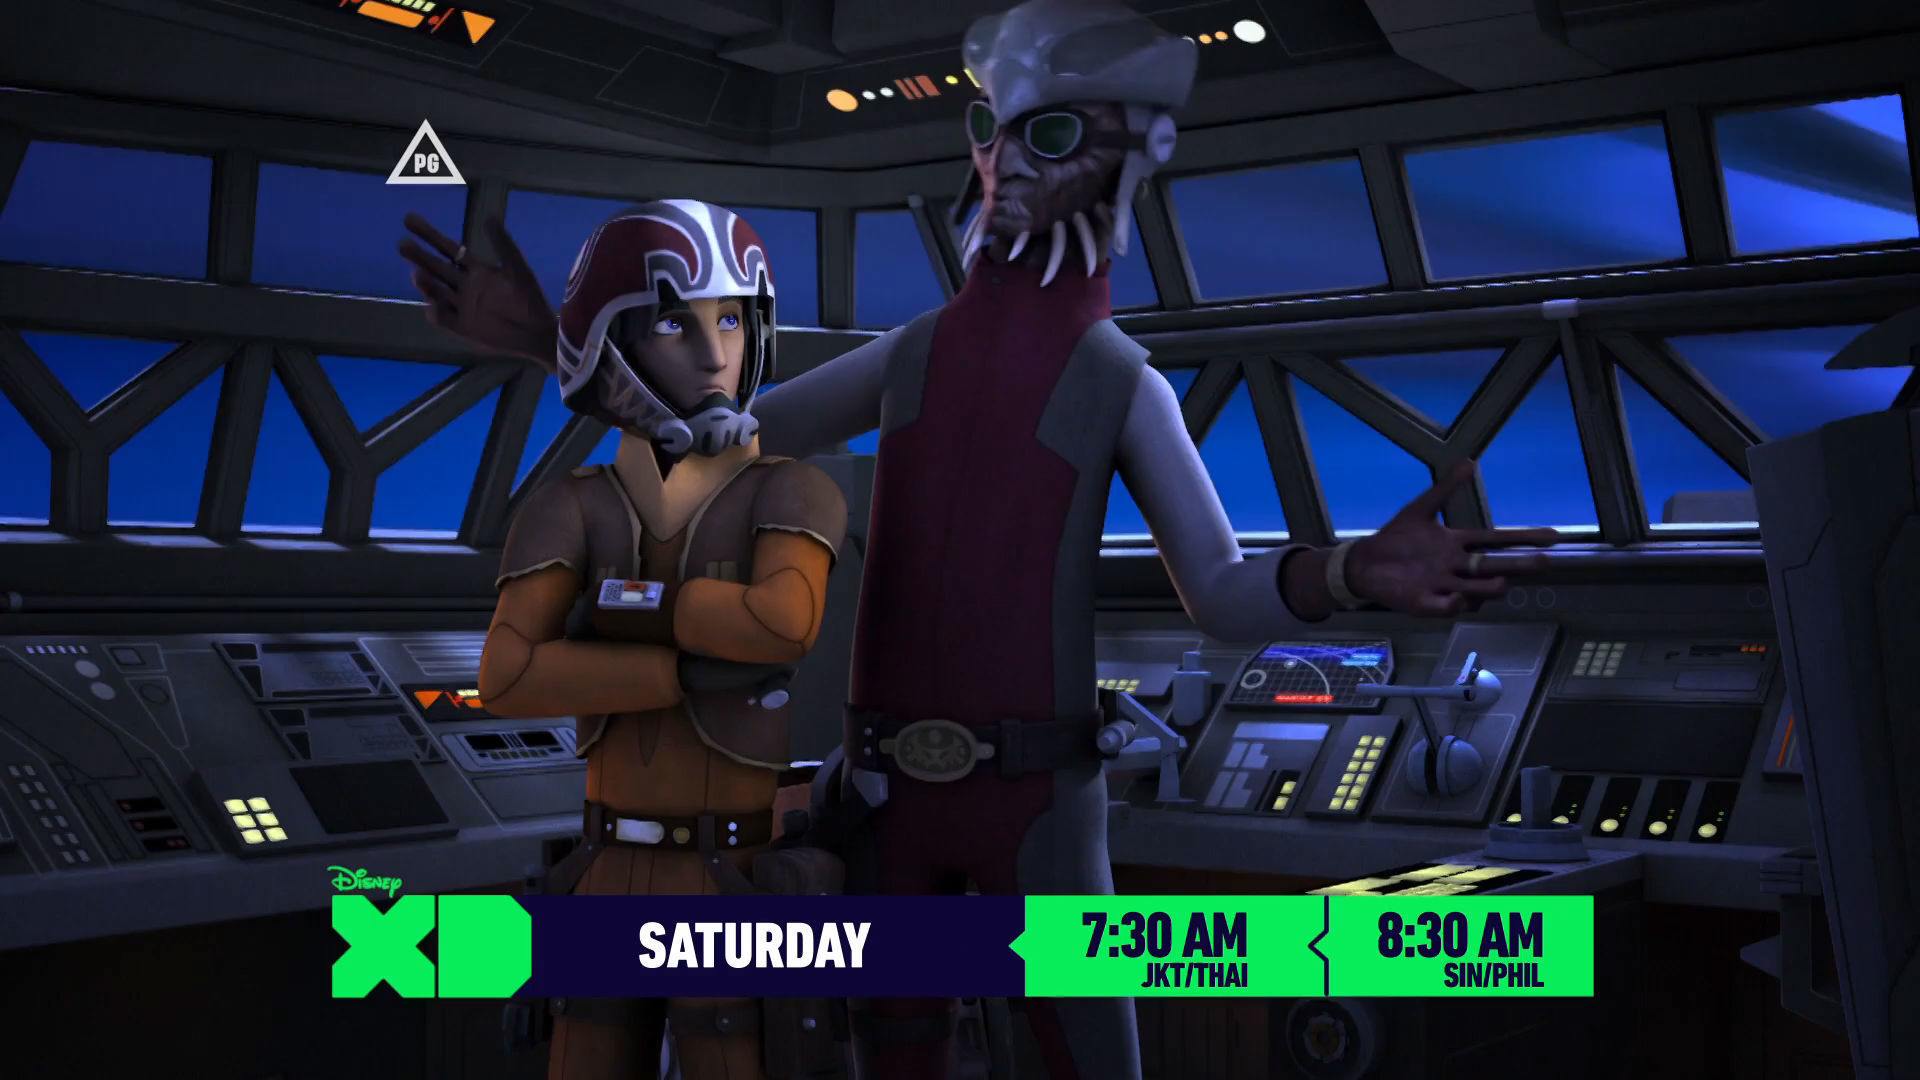 Star Wars Rebels new episodes on Disney XD - Trailer 2